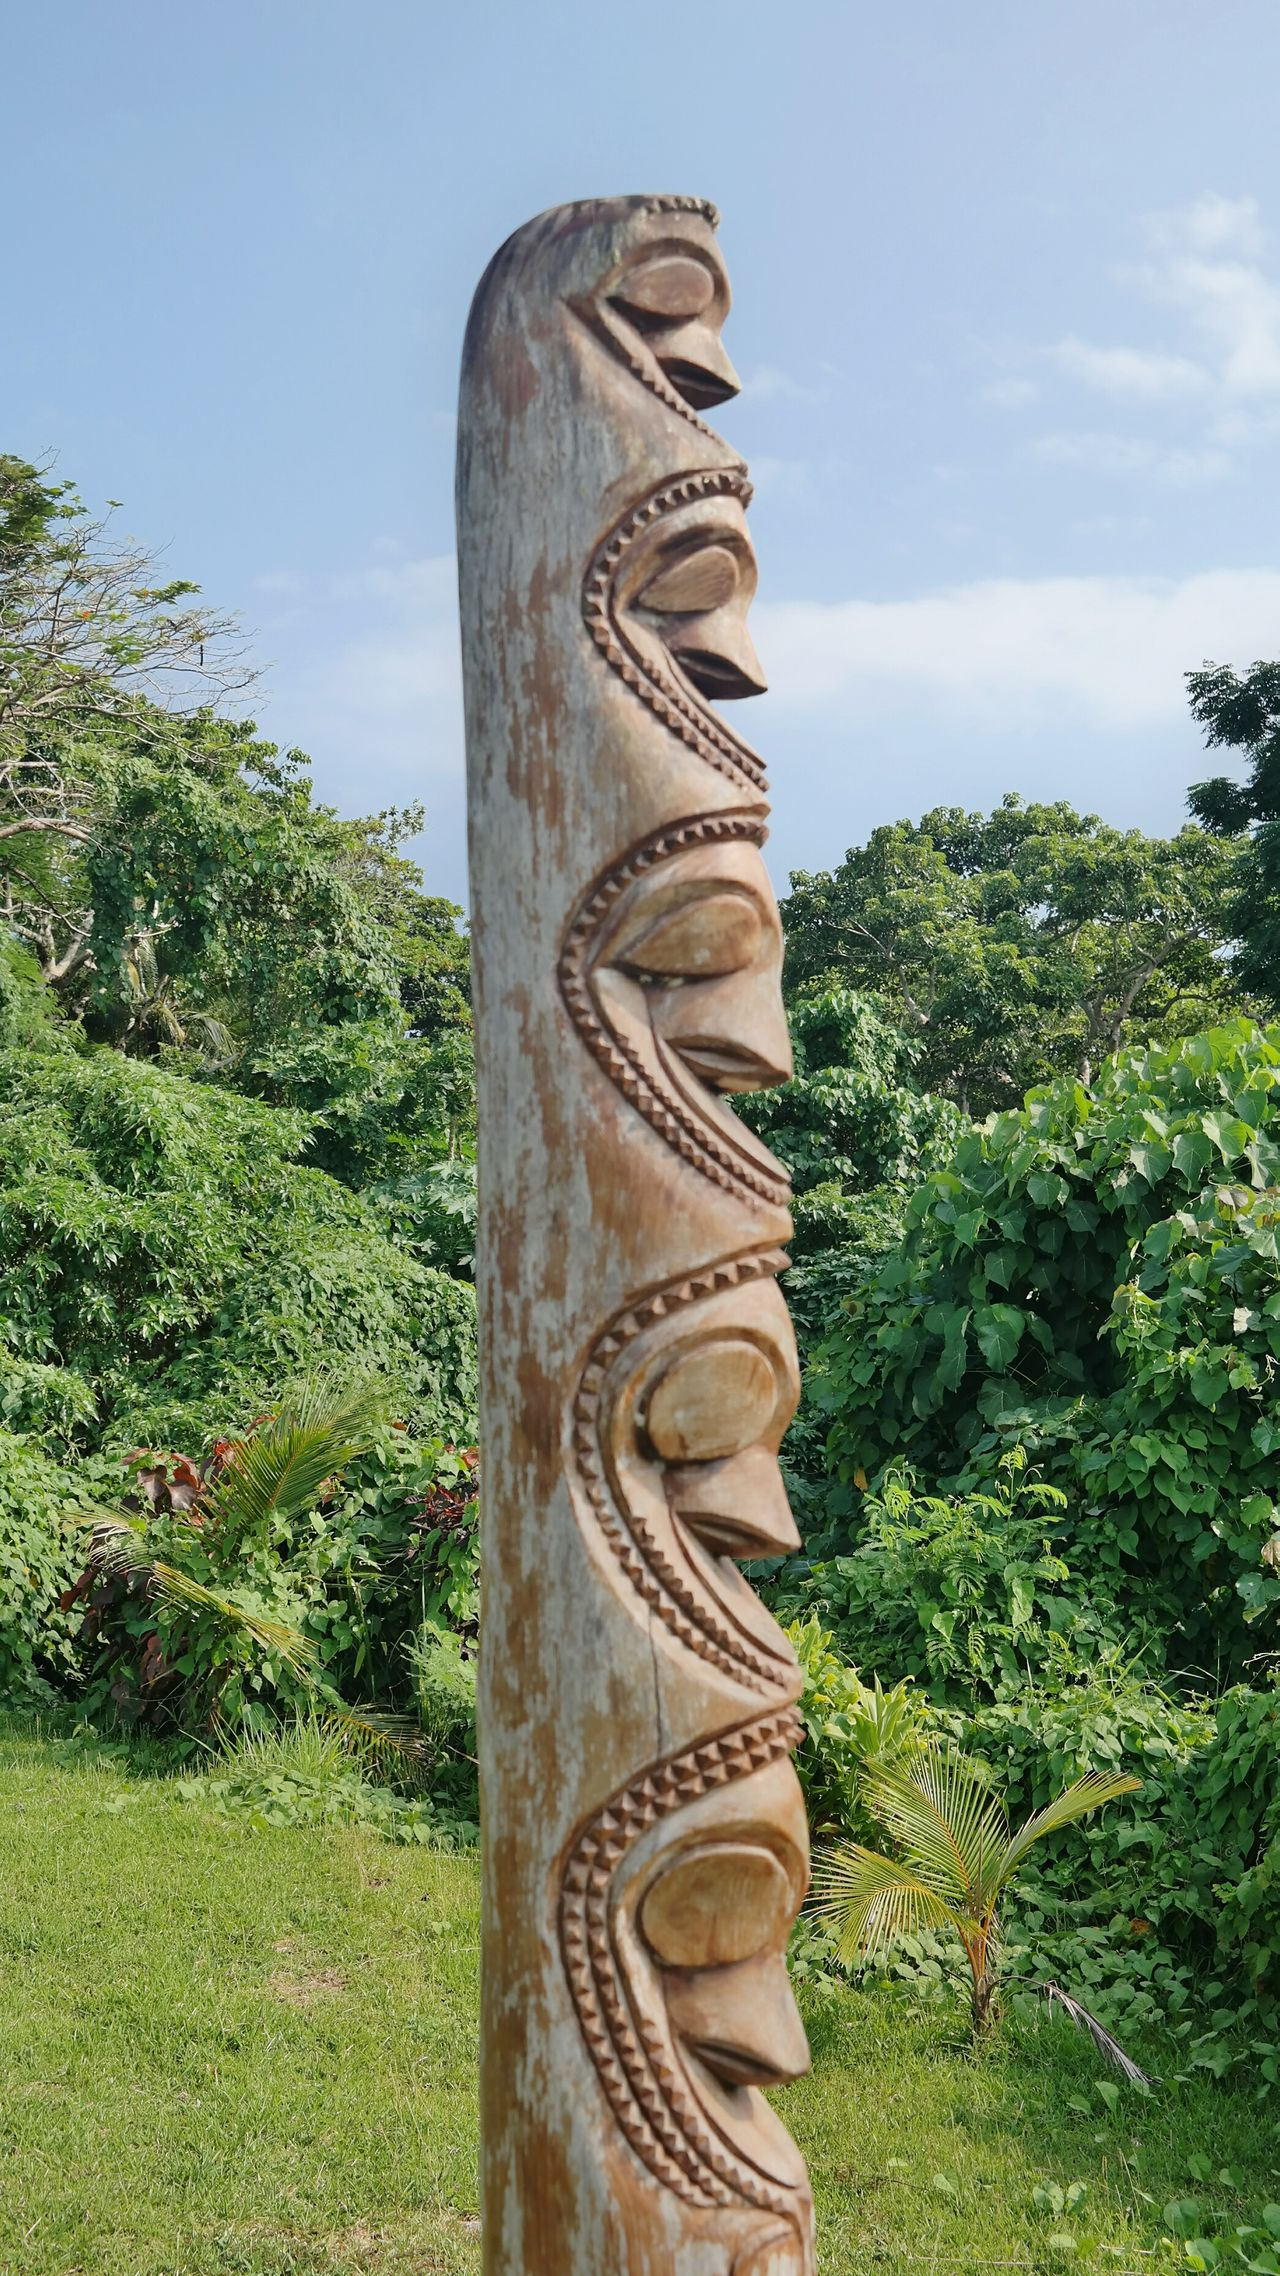 Miles Away Vanuatu Green Color Sky Tree No People Outdoors Sculpture Day Nature Extinct Südsee EyeEm Traveling